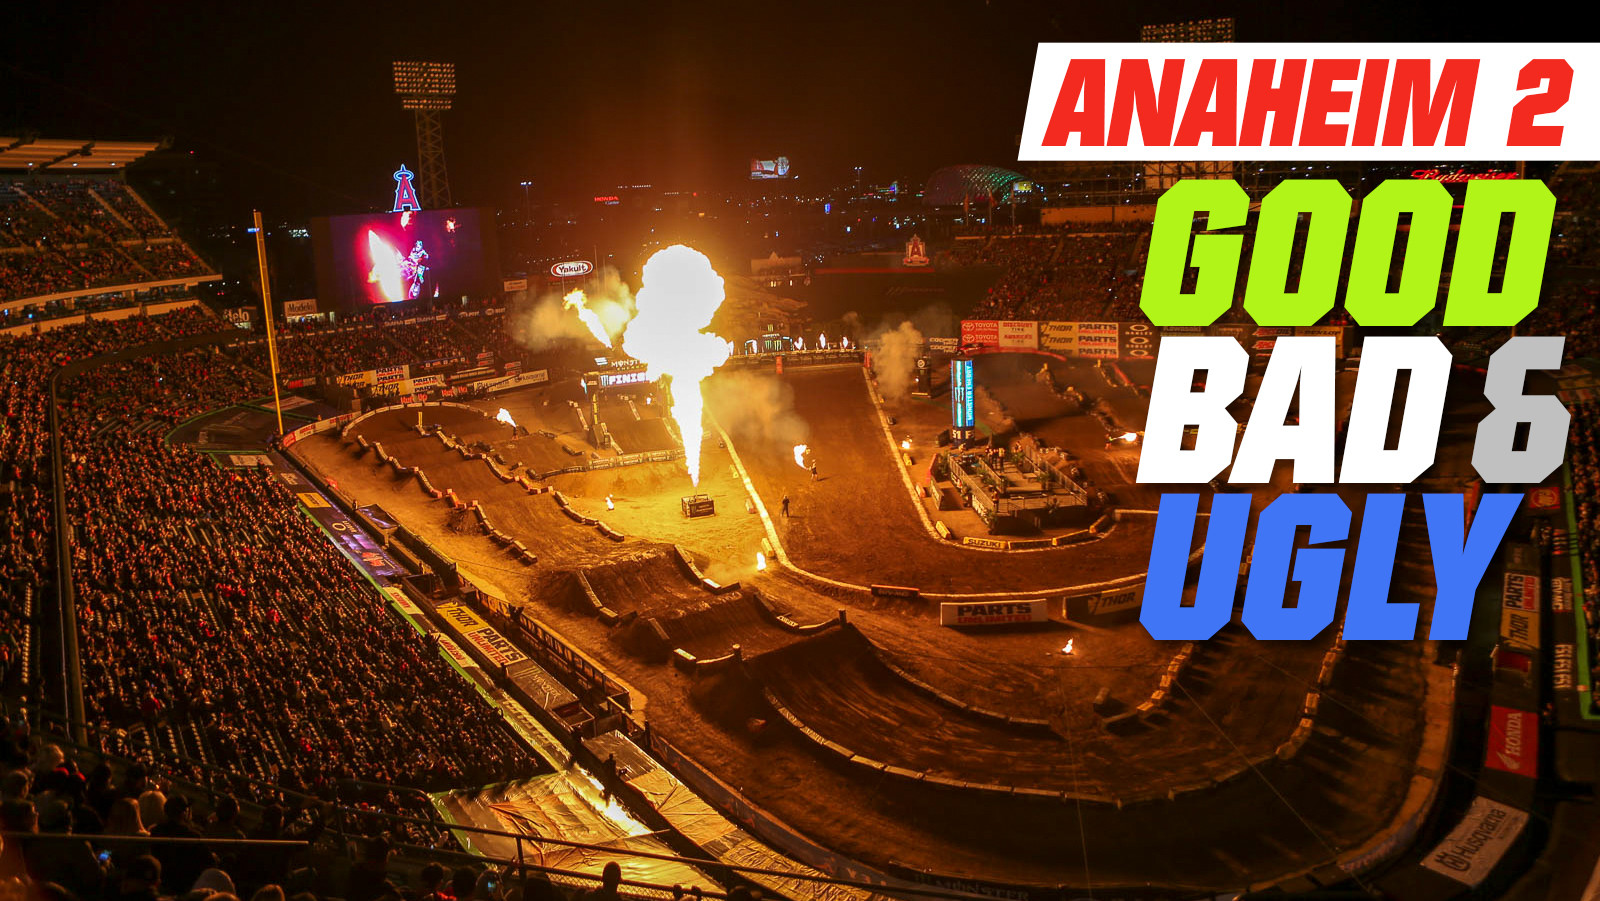 Anaheim 2 - The Good, the Bad, and the Ugly